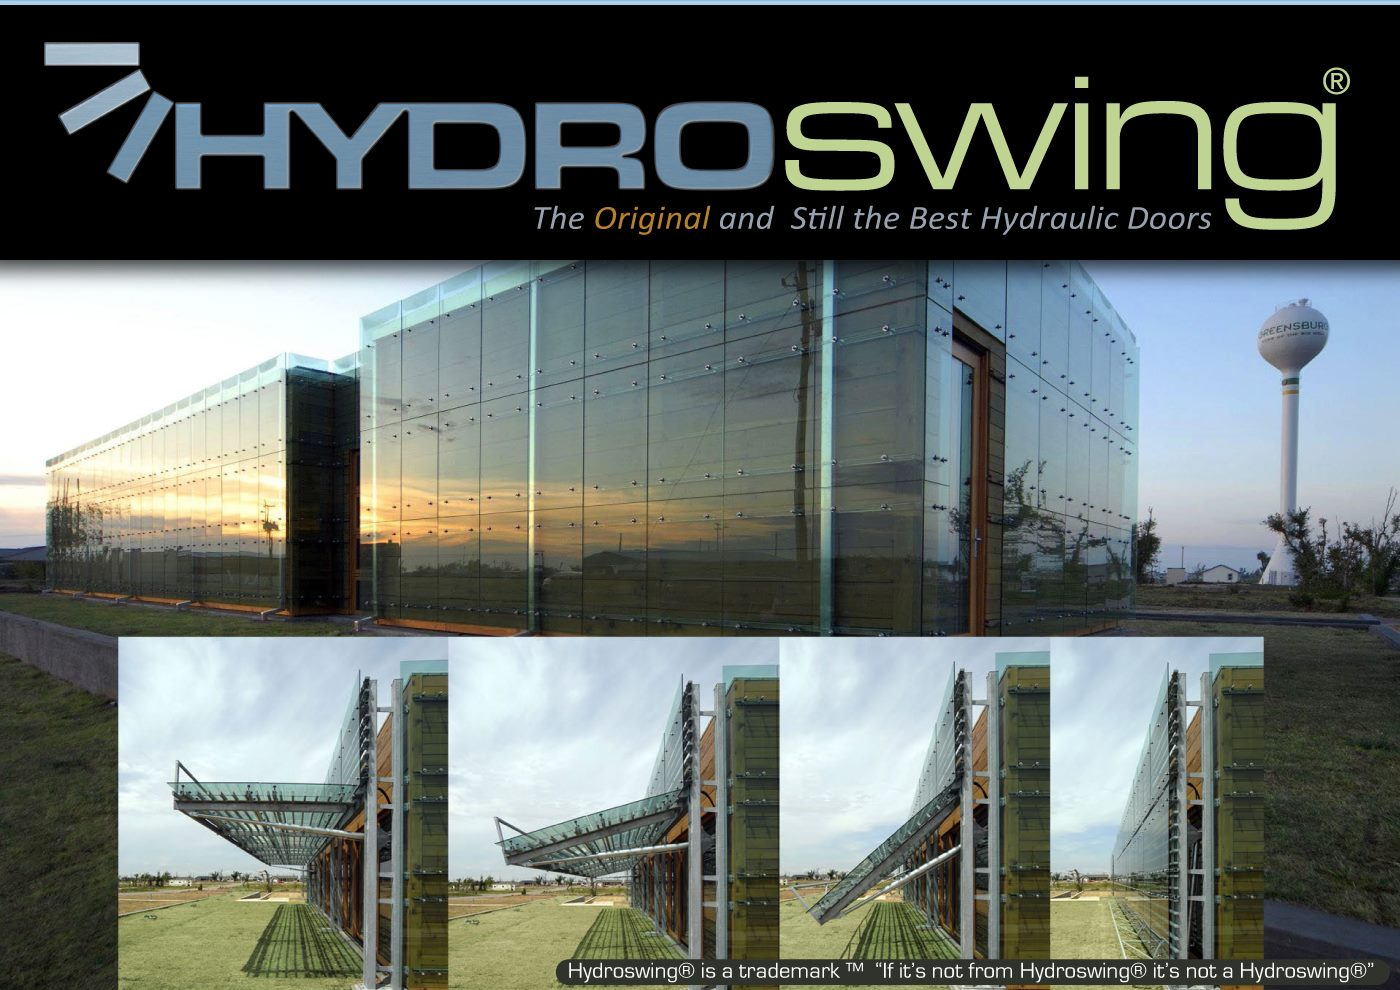 architectural hydraulic doors with glass covering